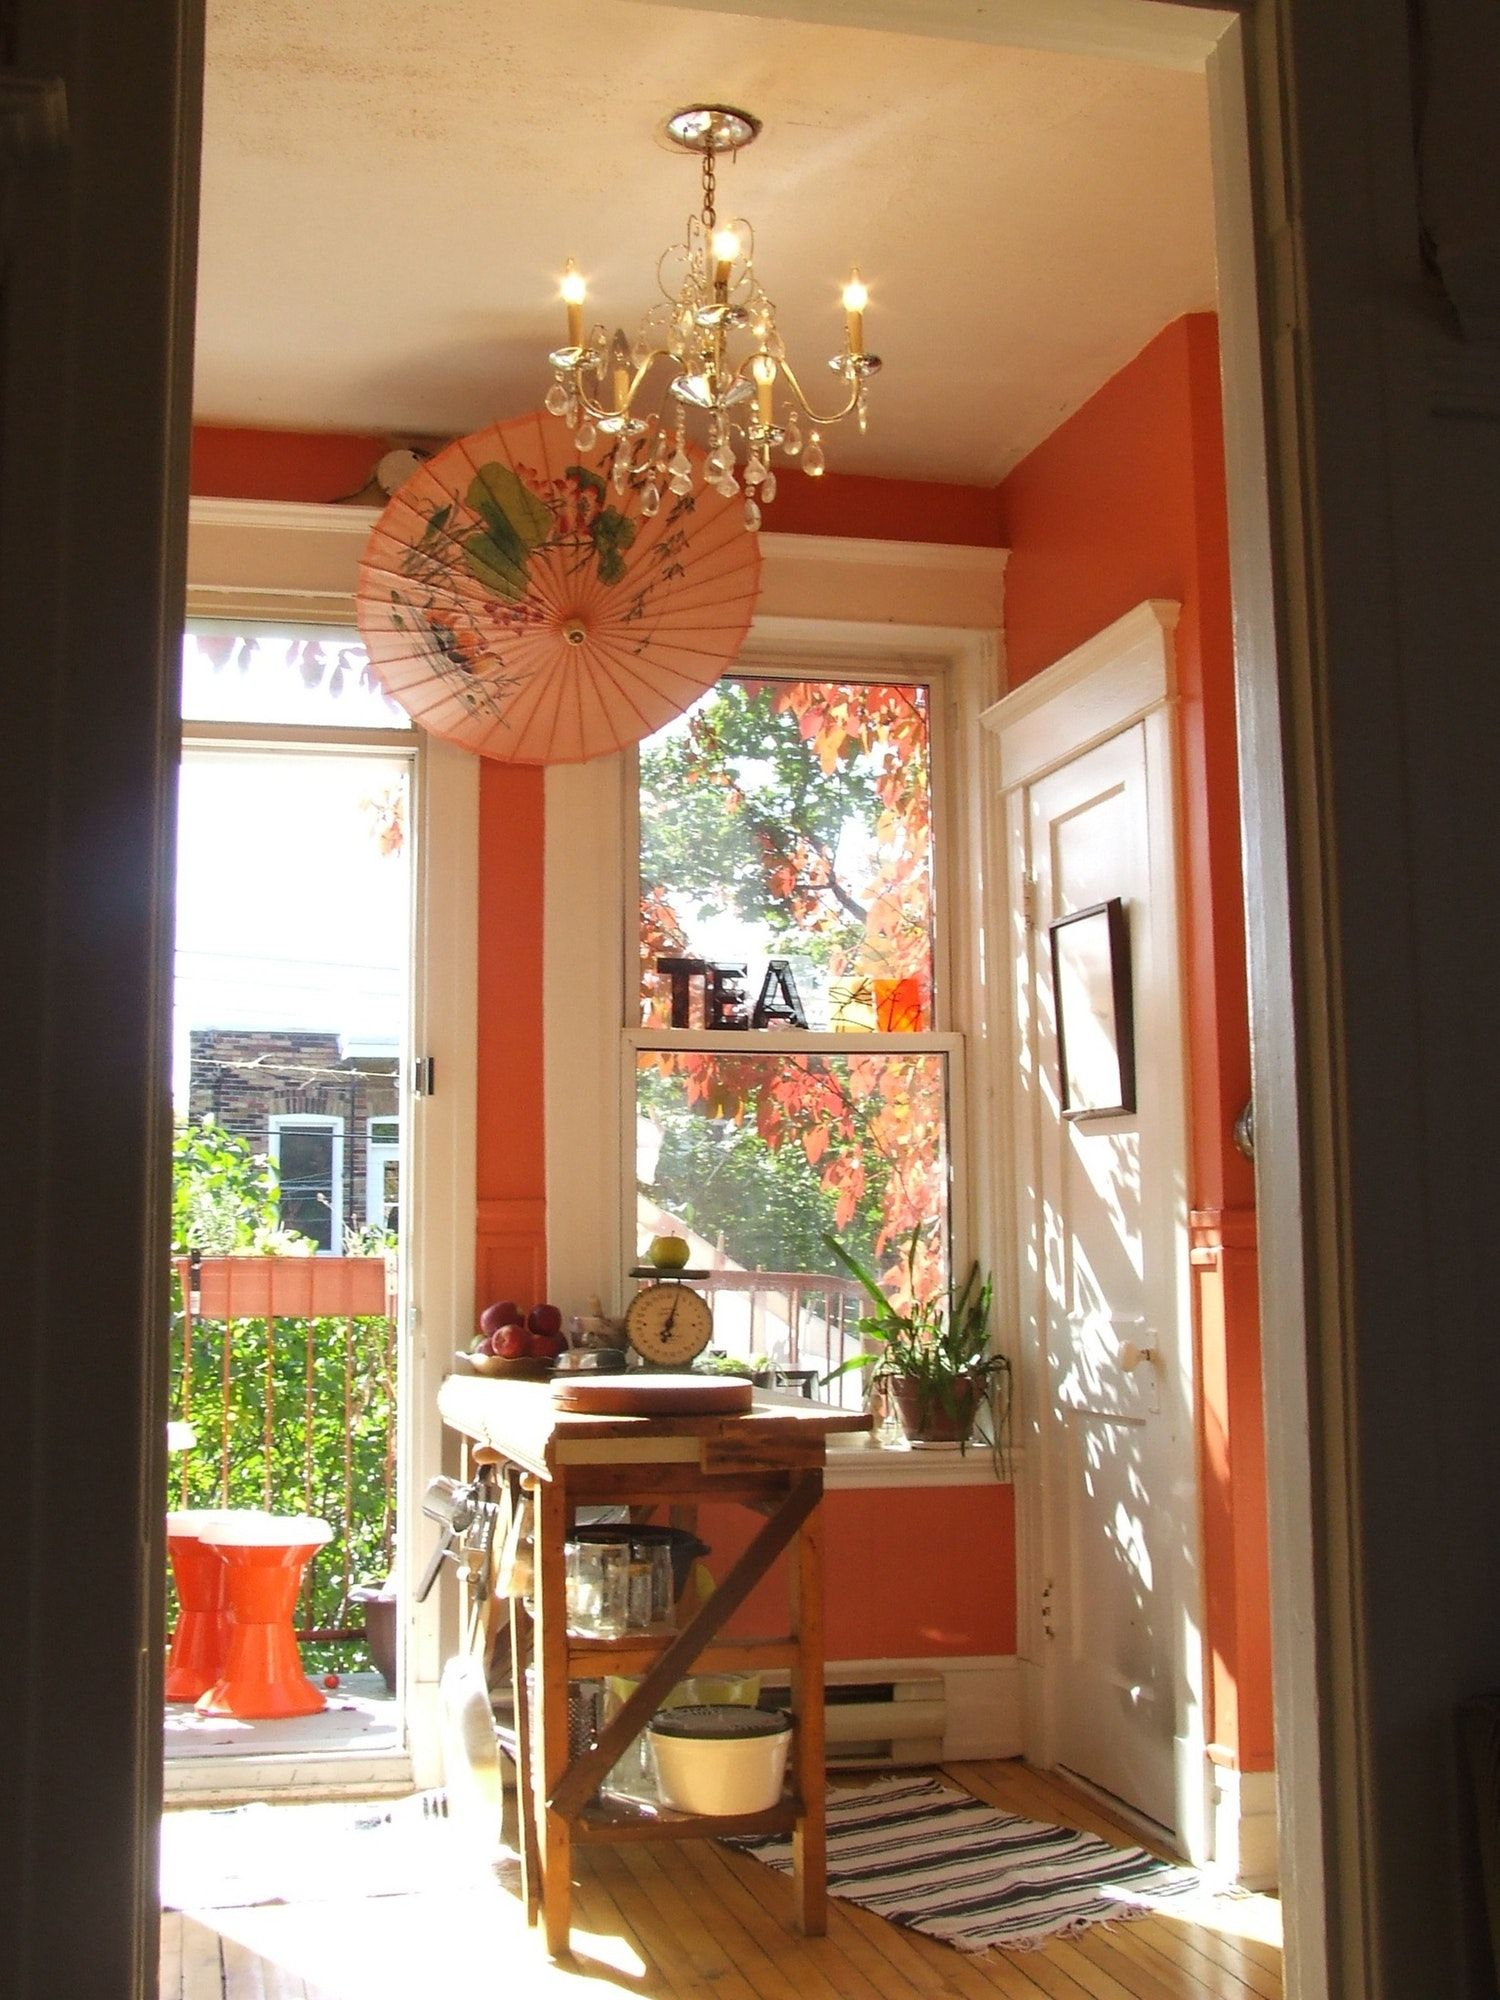 Heather's Coral Kitchen | Coral kitchen, Apartment, Home